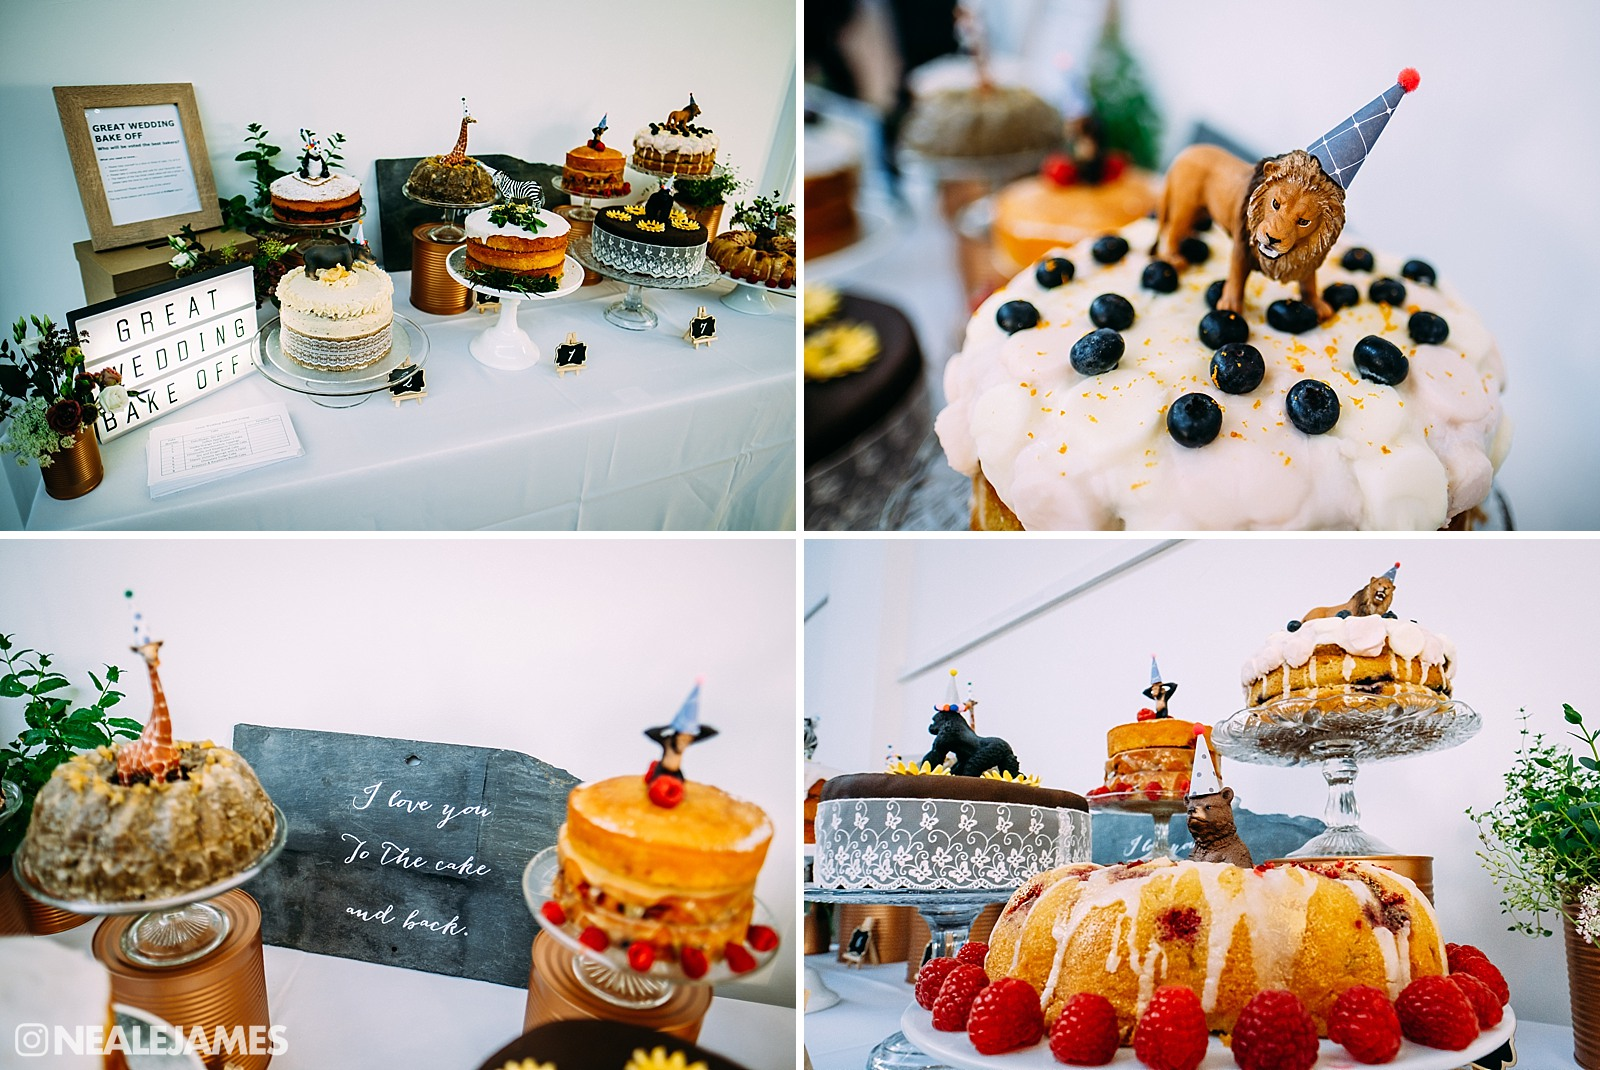 A bake off wedding cake competition photograph